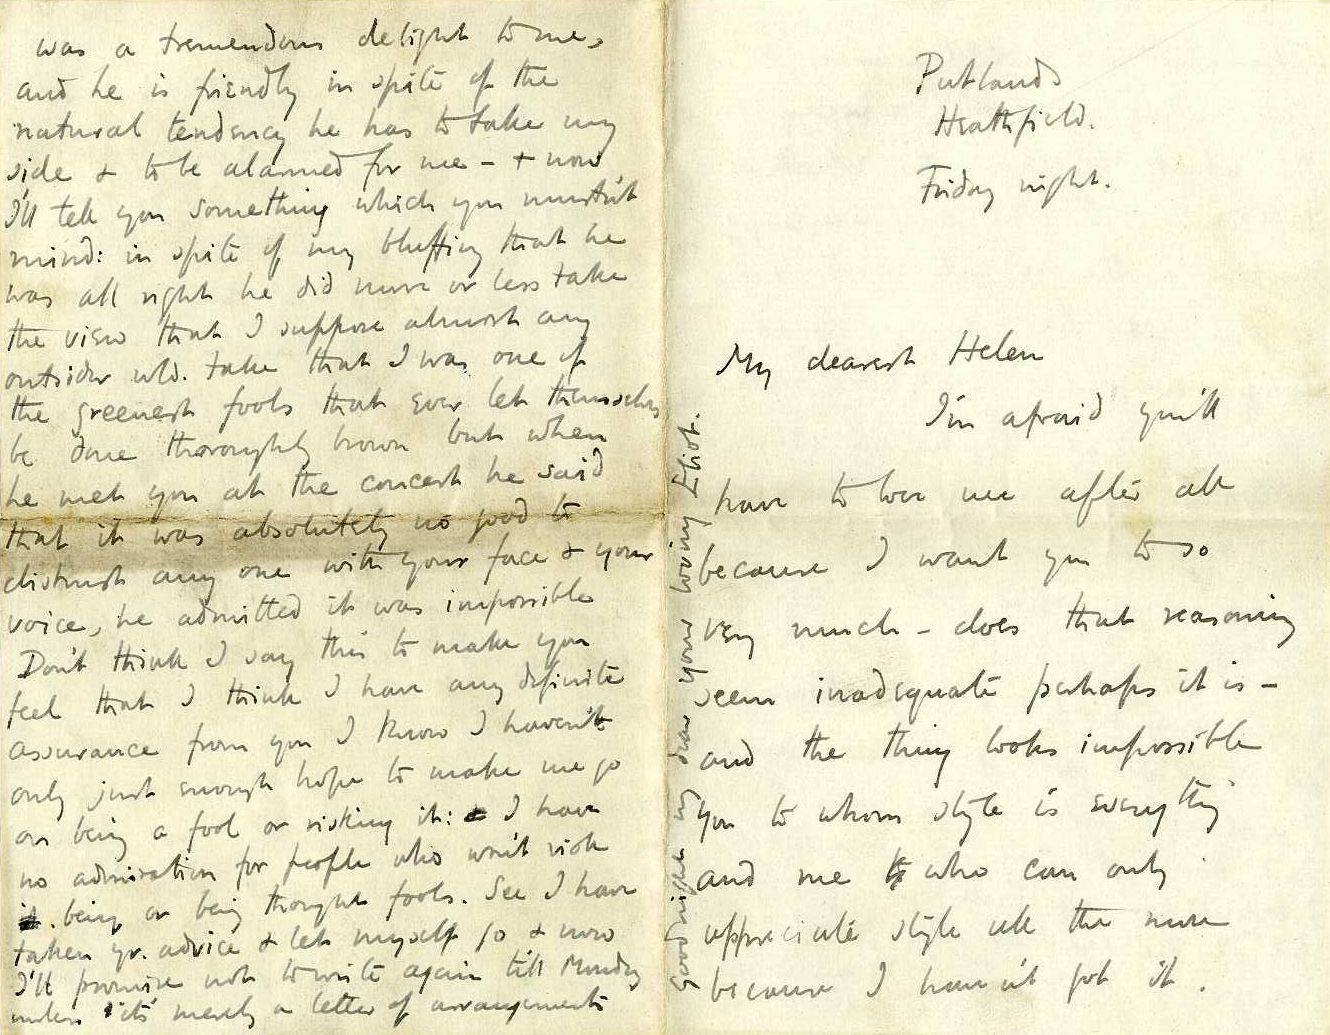 Letter from Roger Fry to Helen Coombe, 1896, concerning his feelings for her. [REF/3/58]